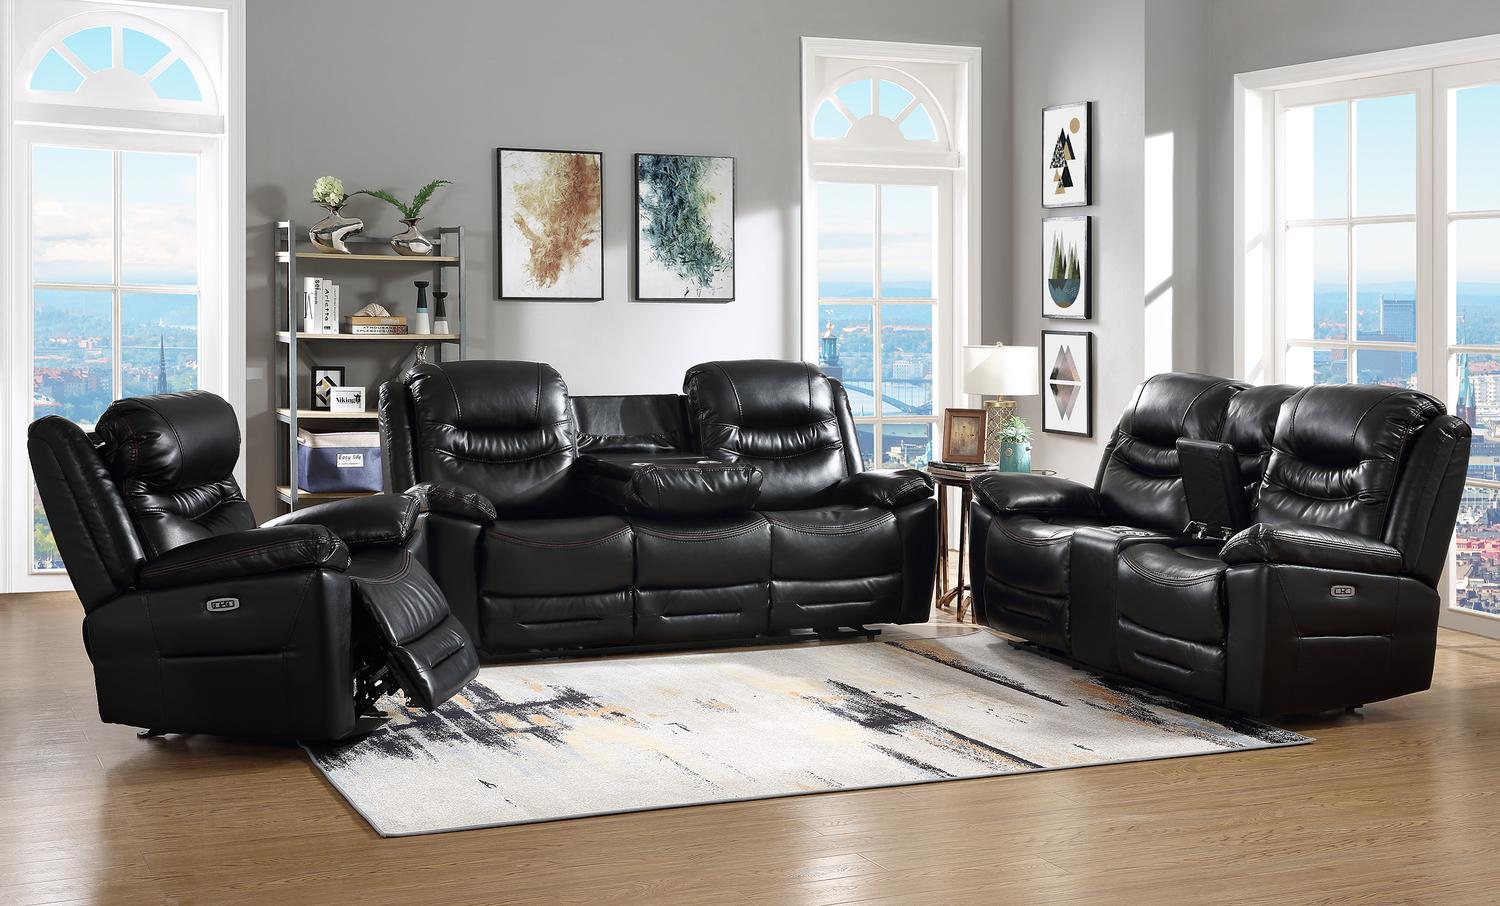 Myco Furniture Recliners in Mobile, AL